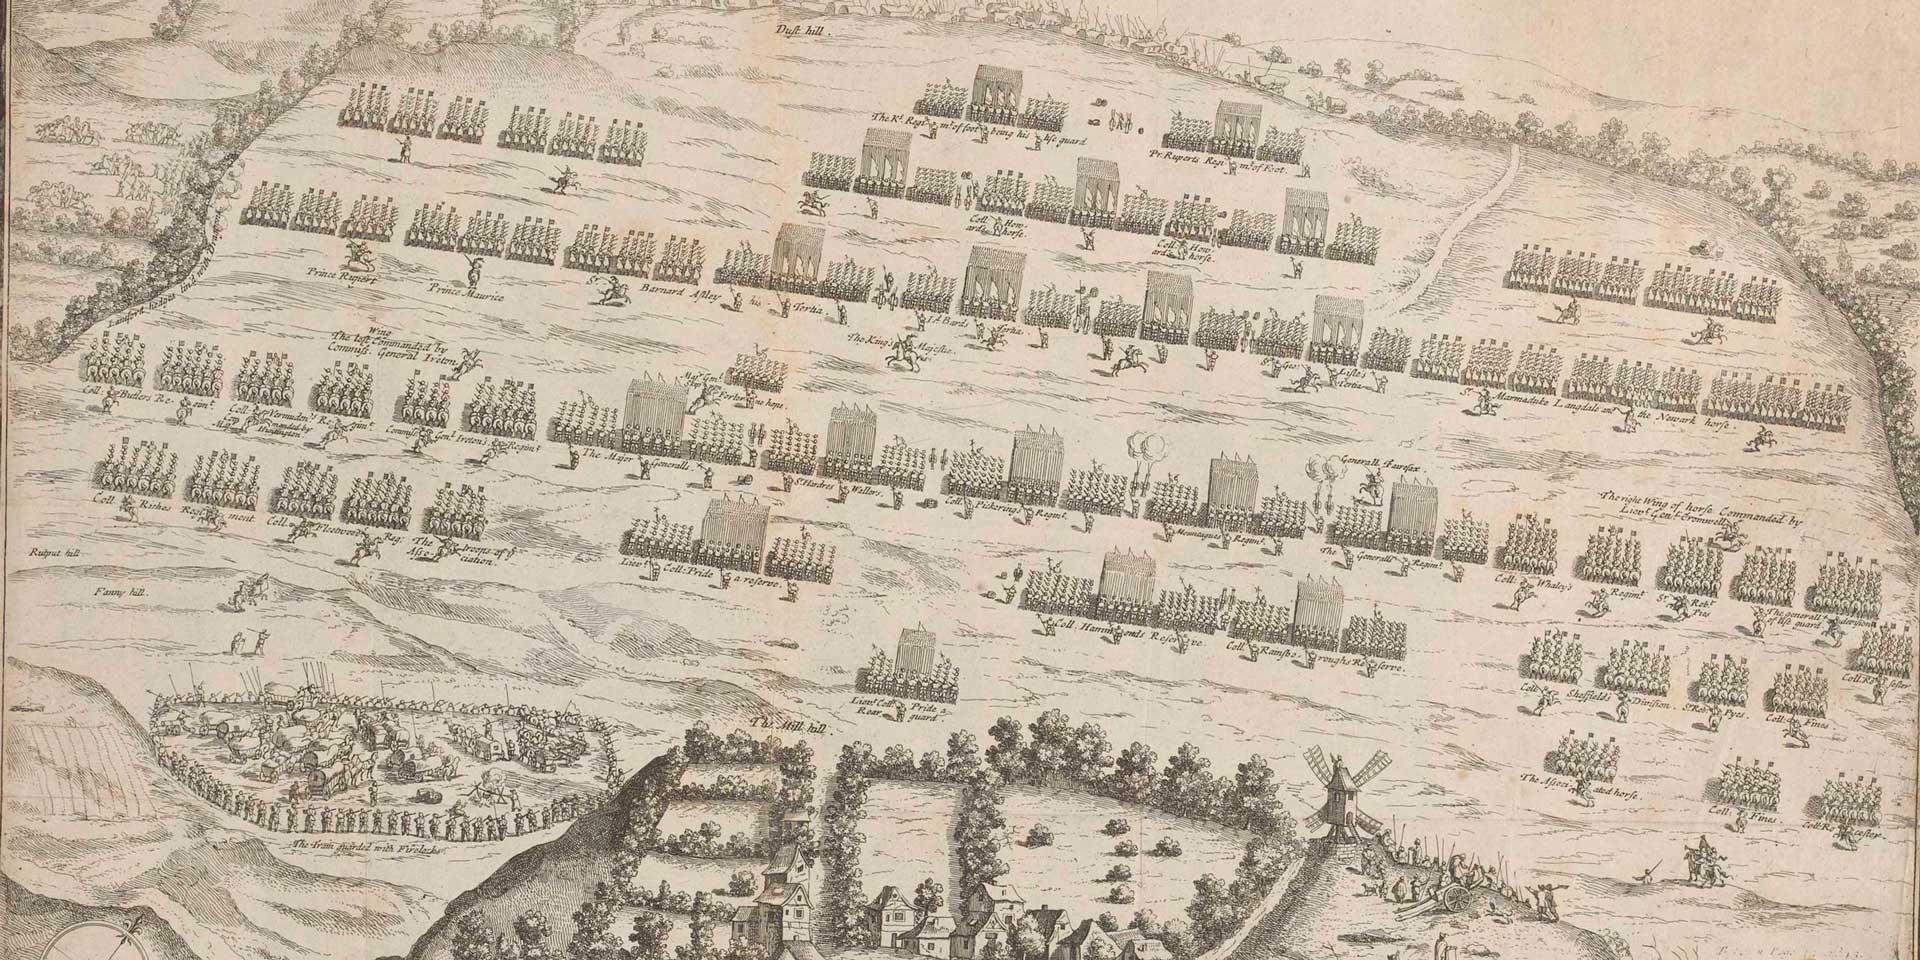 The opposing armies at Naseby in 1645 - a triumph for Parliament's New Model Army and its many puritan soldiers, the battle sealed the fate of both Charles I and Christmas